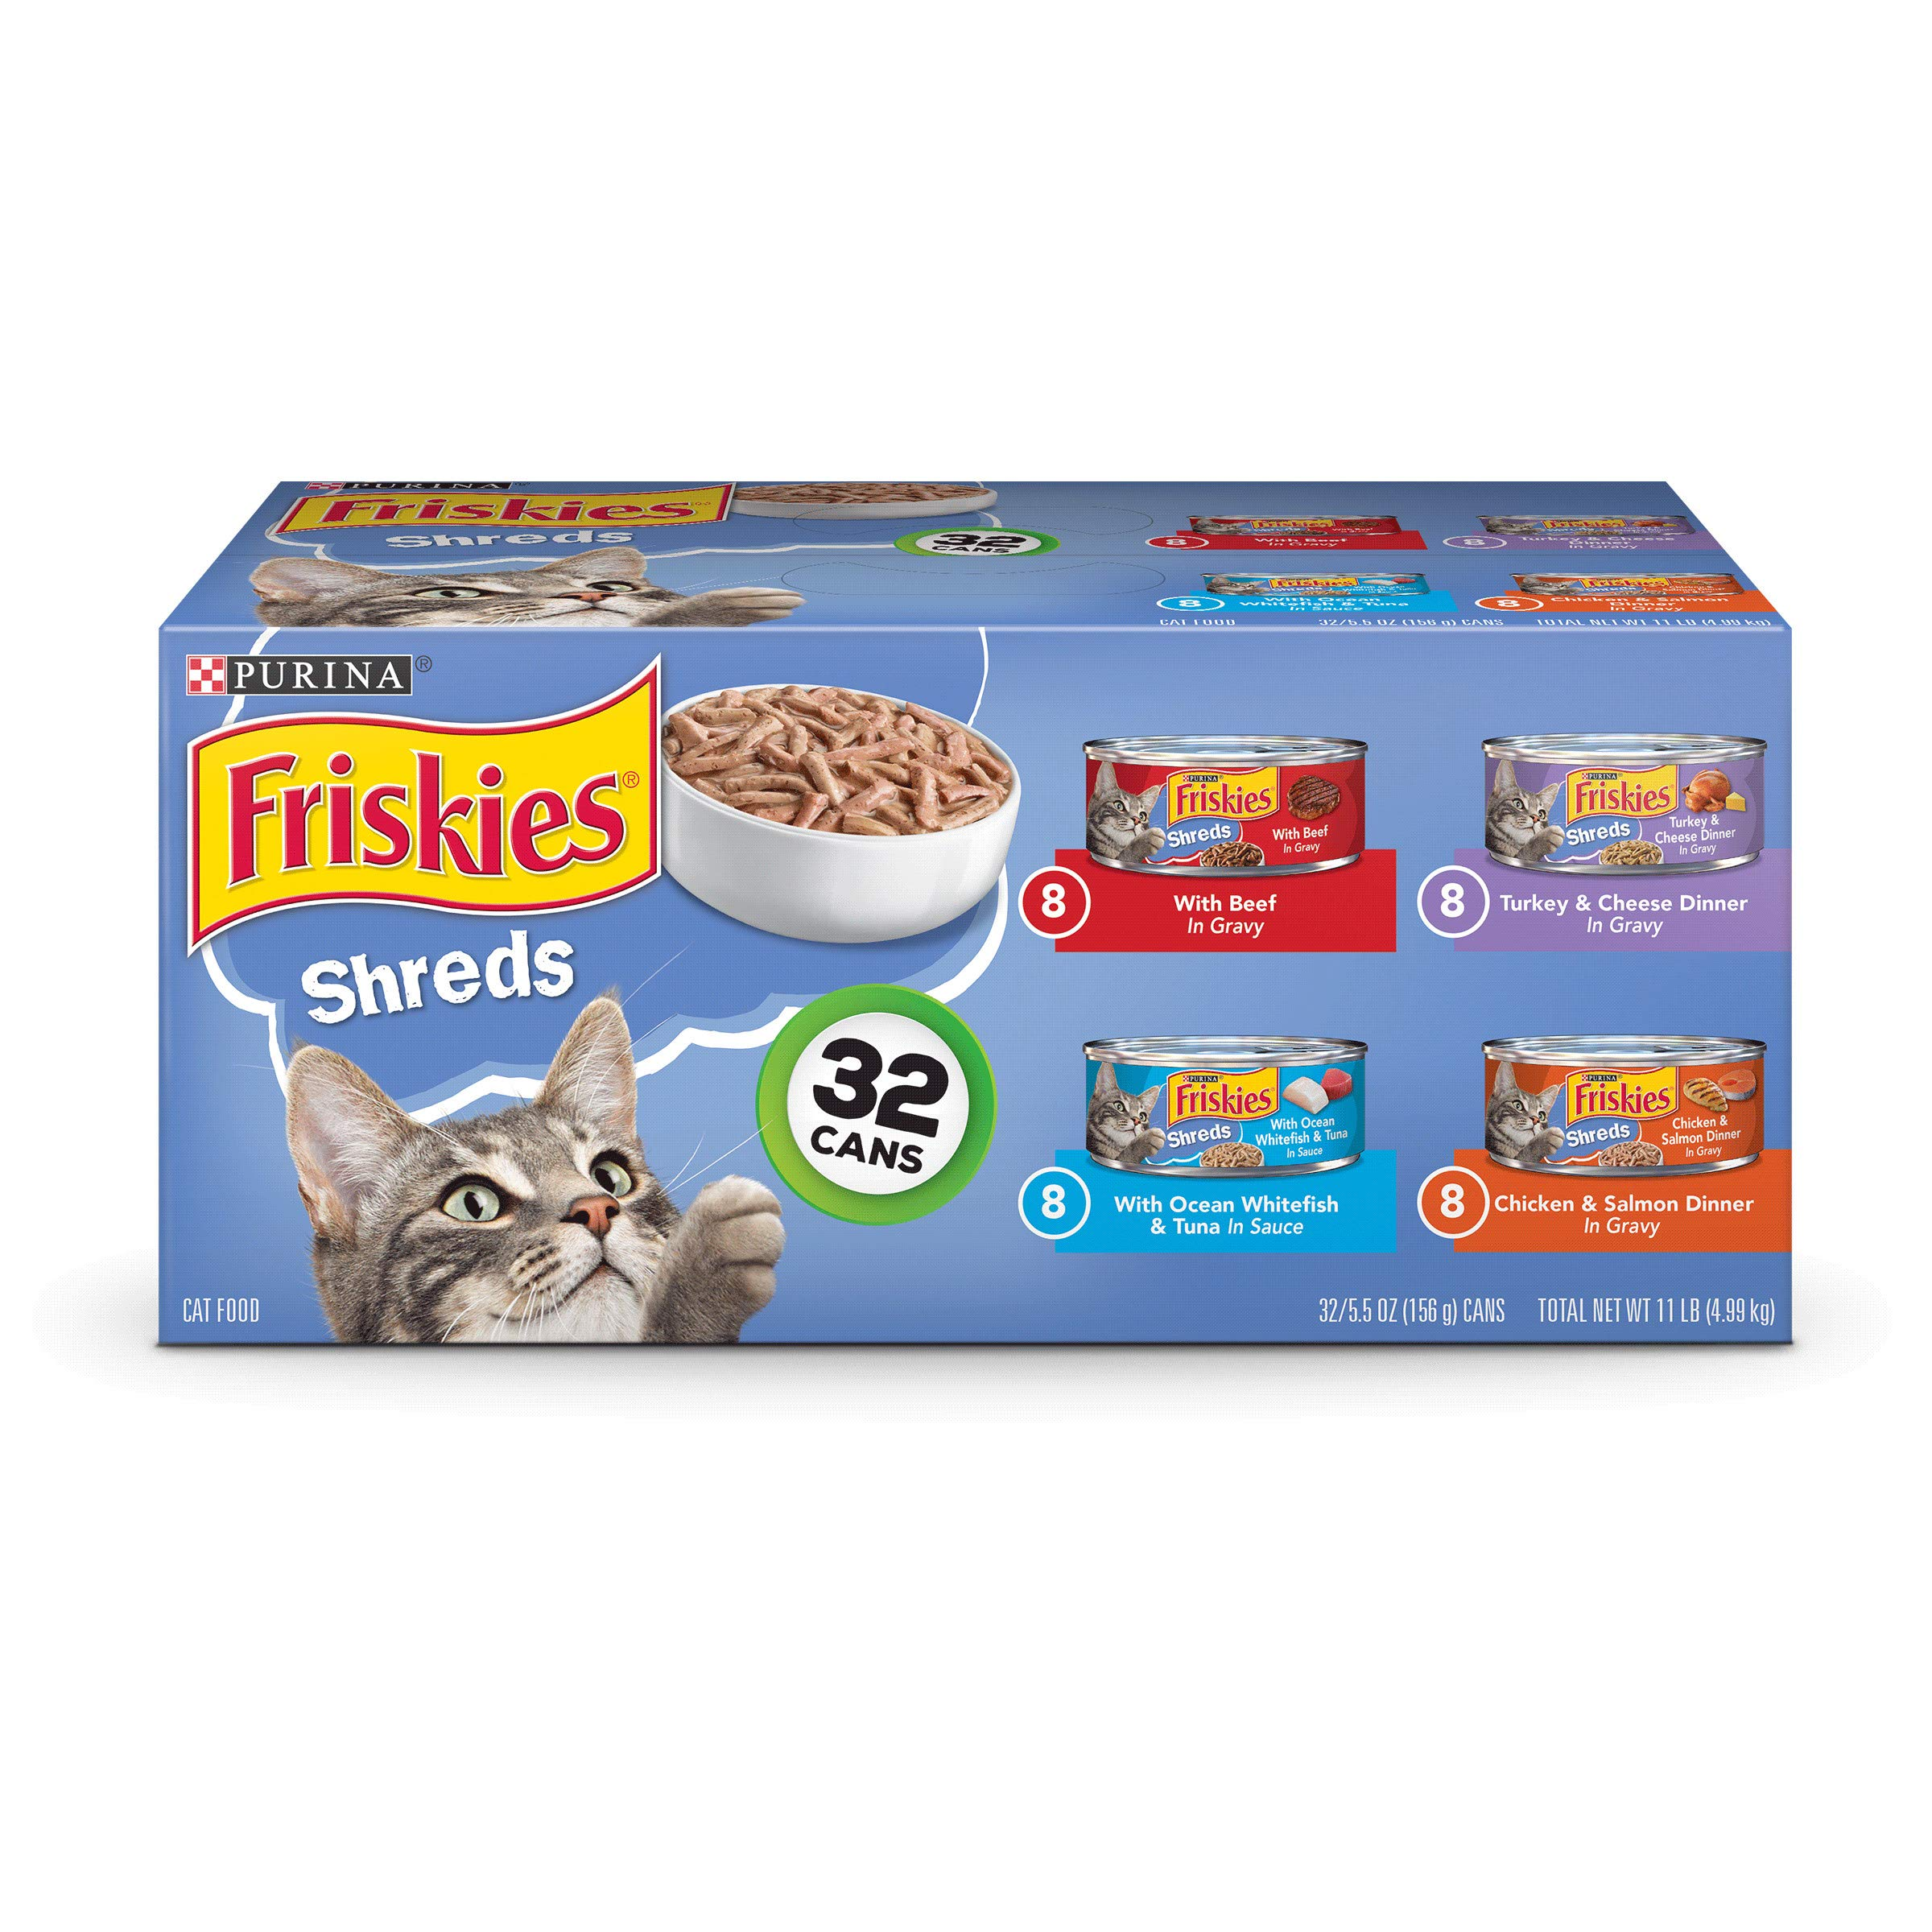 Purina Friskies Savory Shreds Adult Wet Cat Food Variety Pack - (32) 5.5 oz. Cans